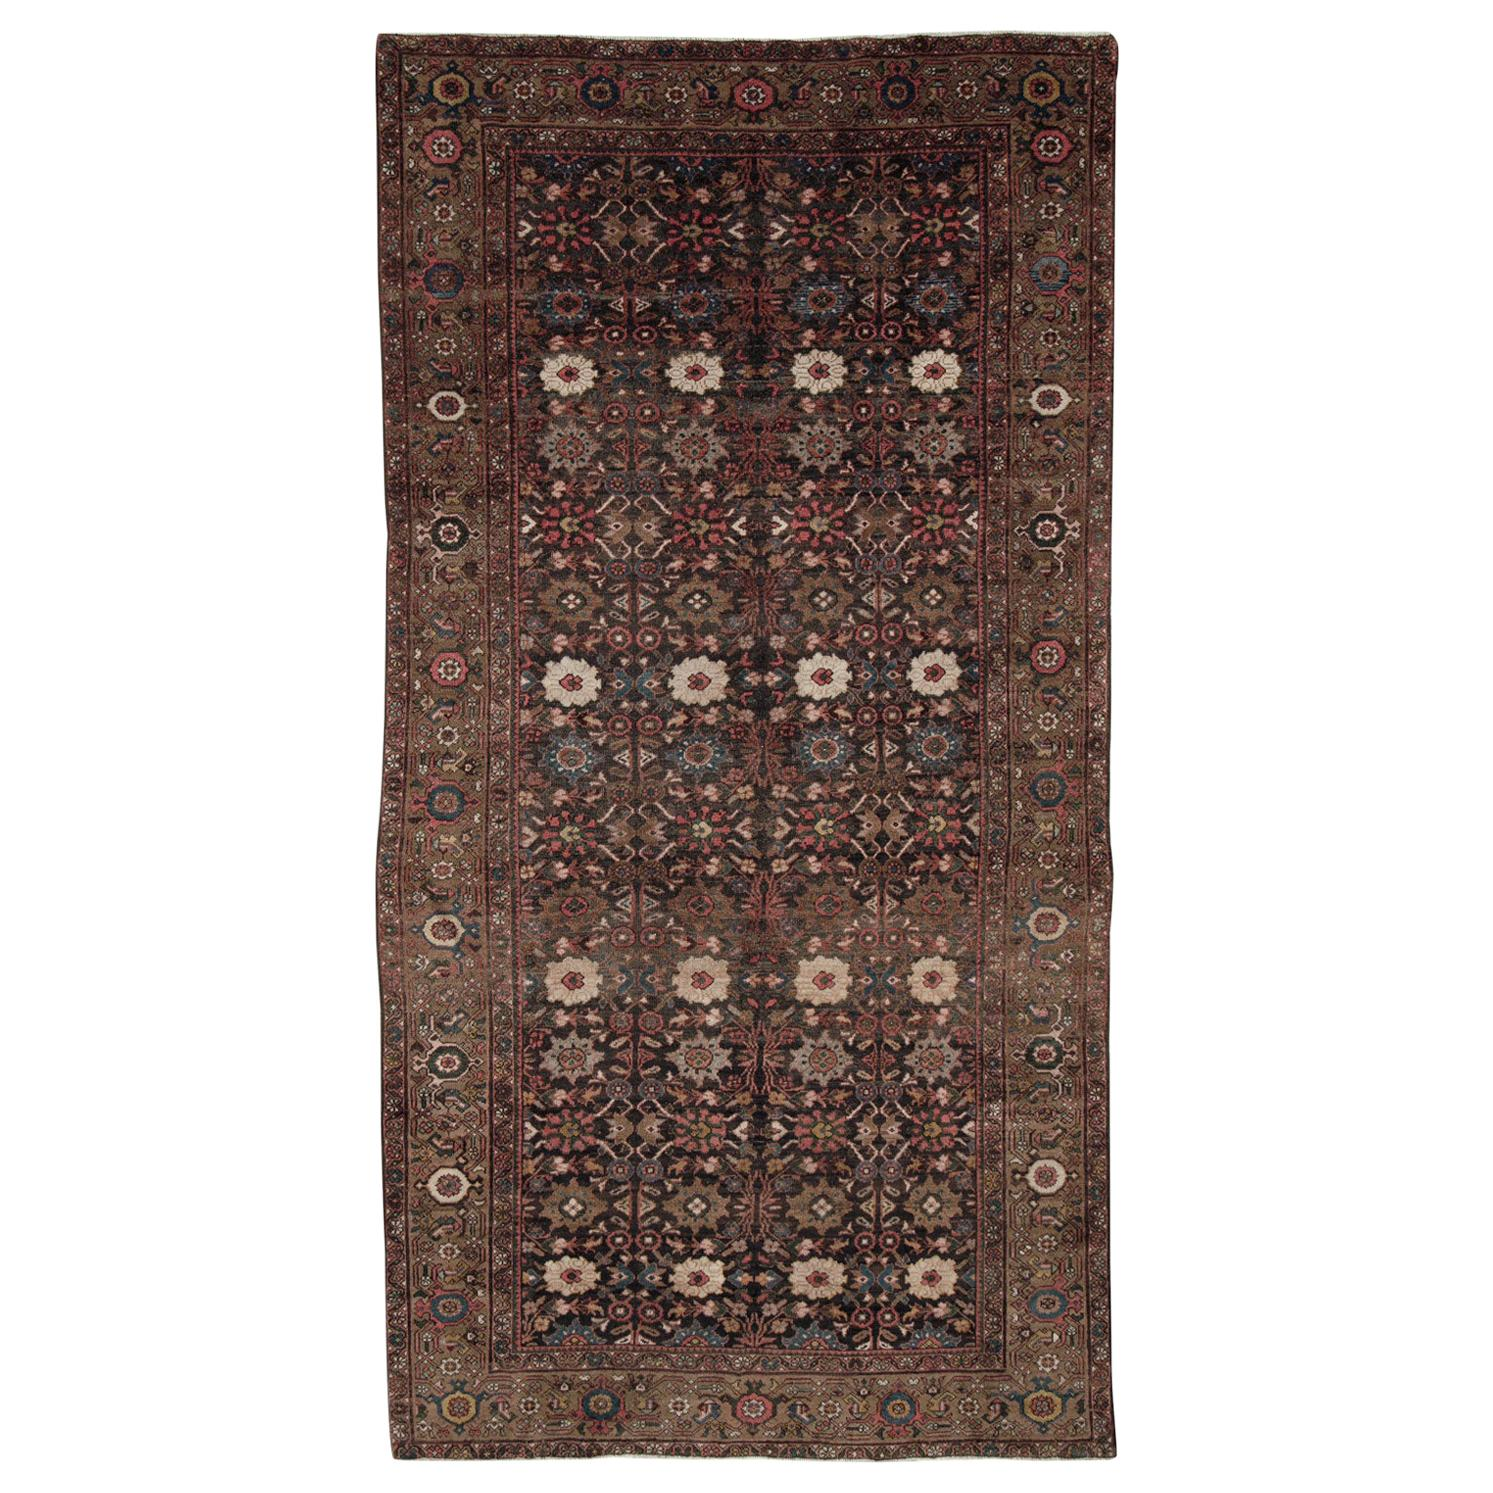 Early 20th Century Handmade Persian Mahal Gallery Accent Rug